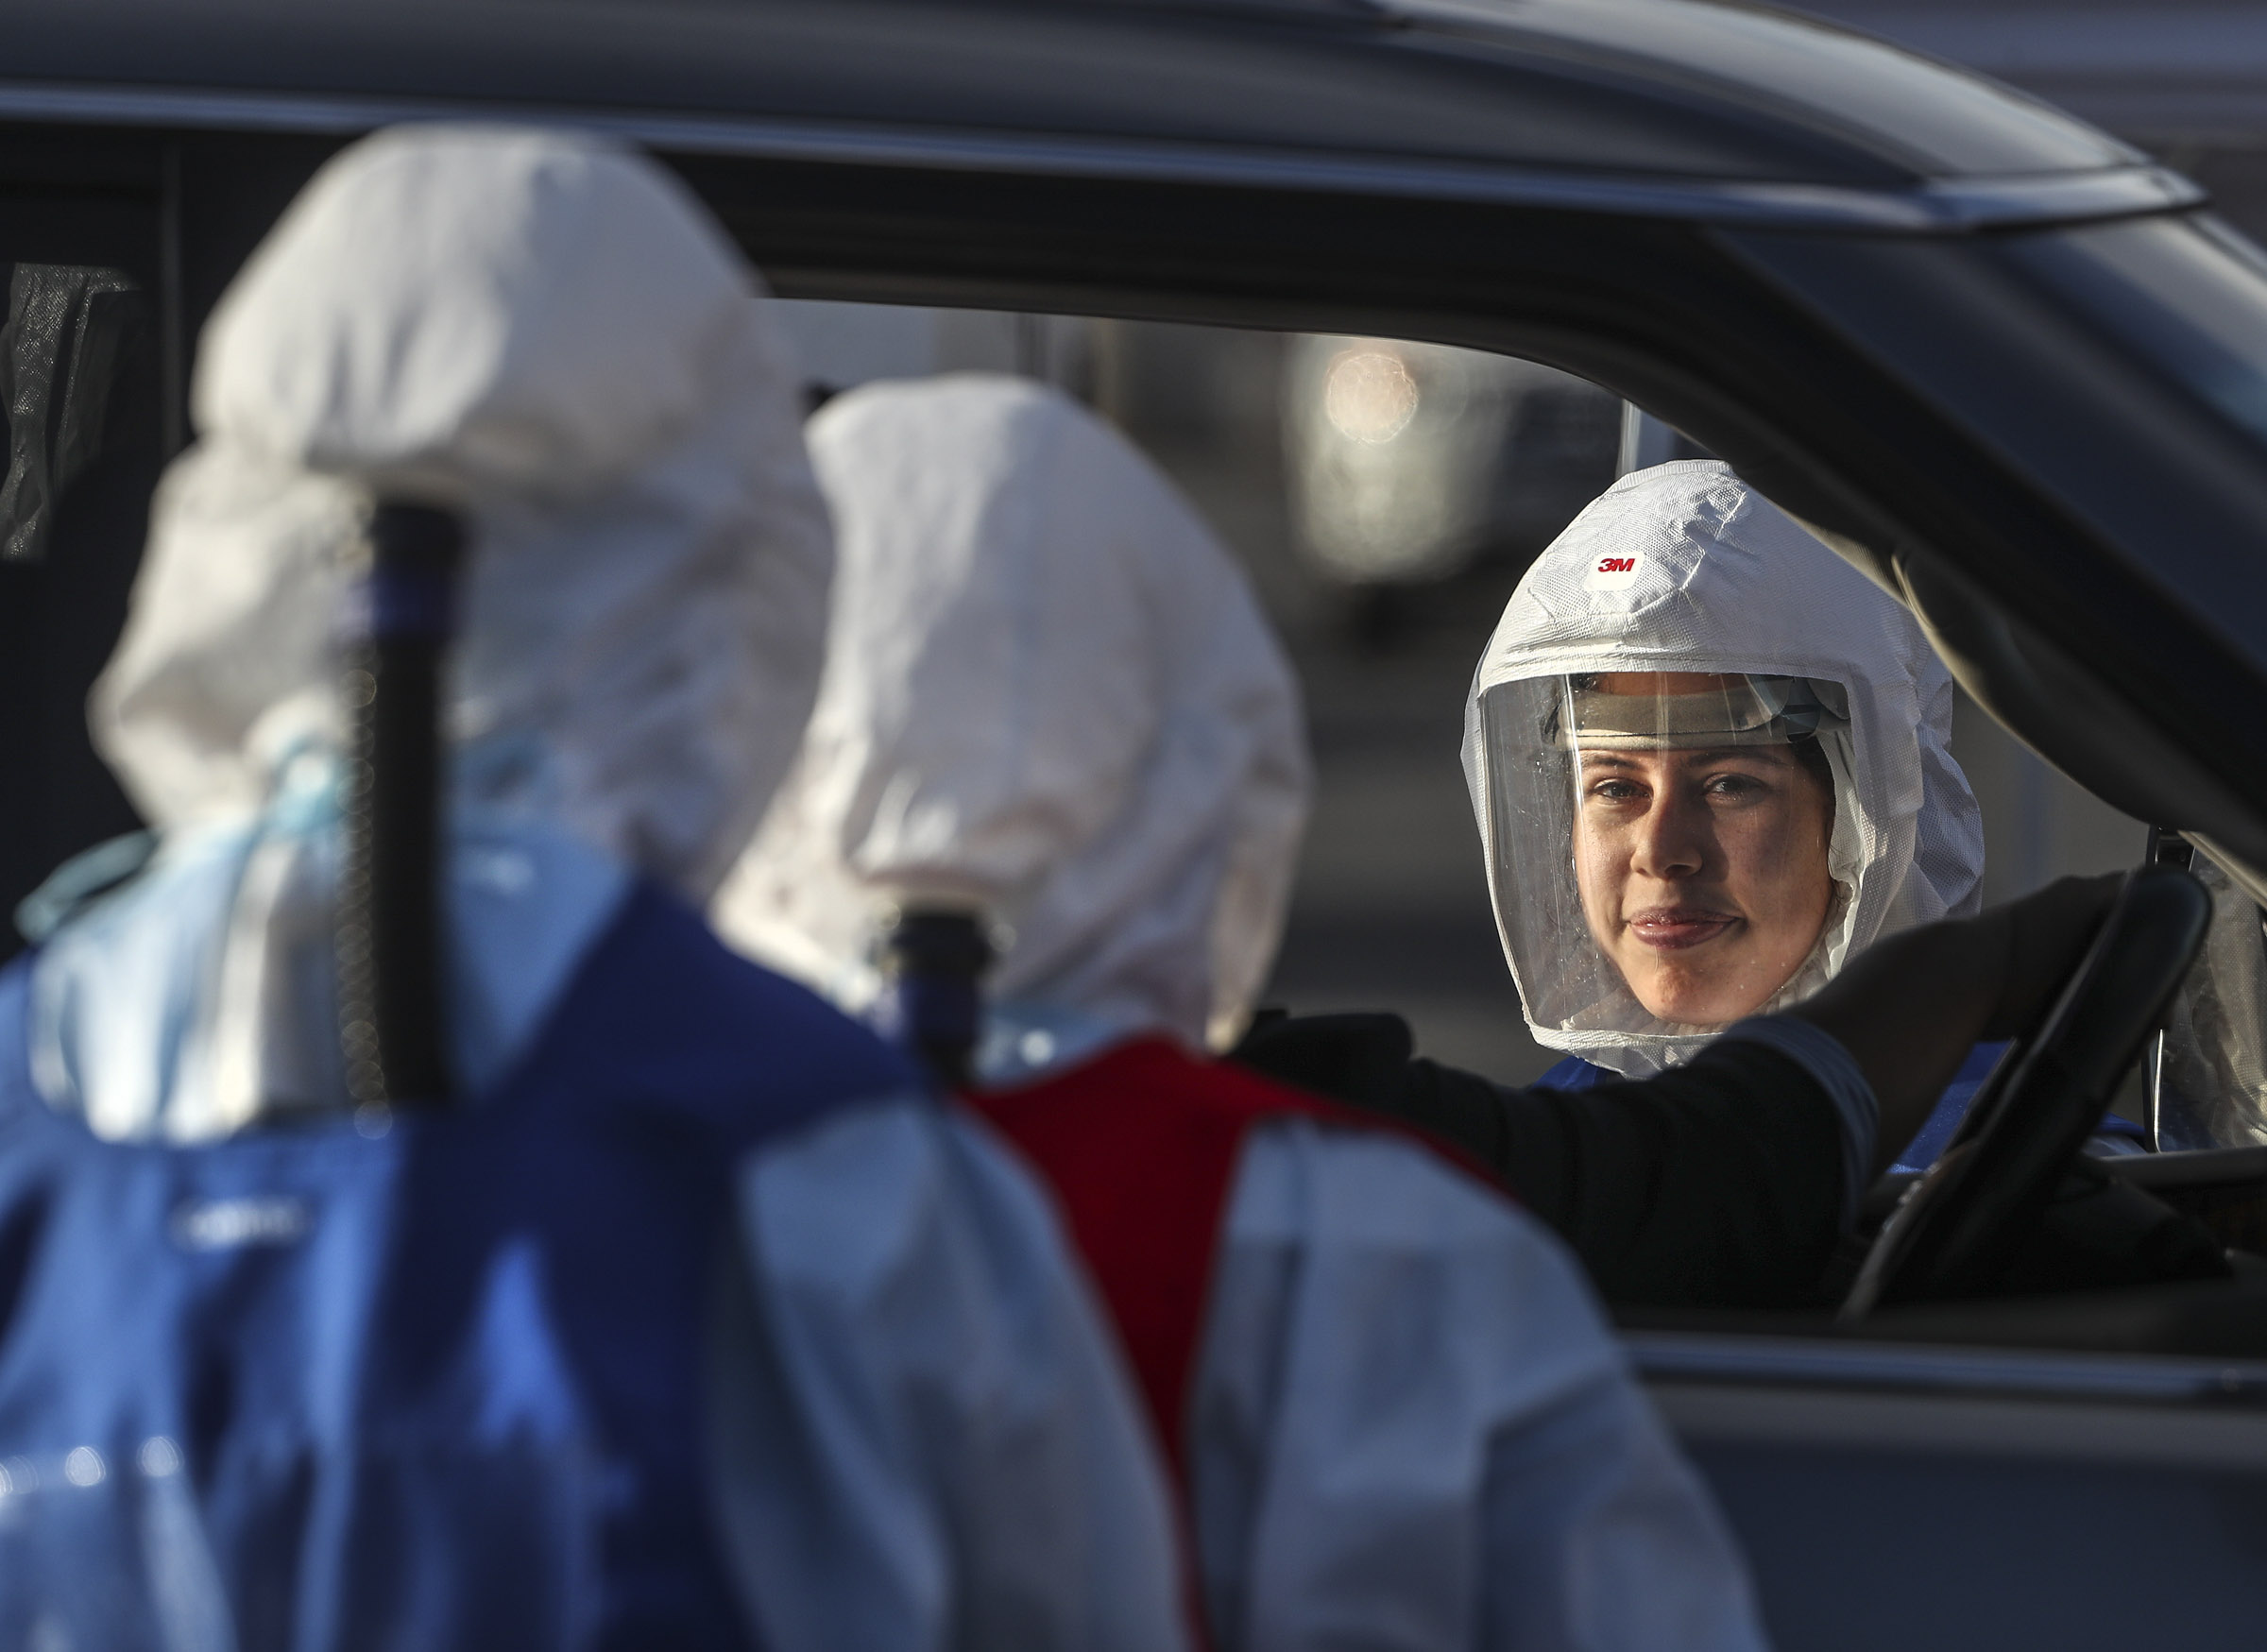 Sonia Gutierrez, a Salt Lake County mobile tester, smiles as she prepare to administer a COVID-19 test at the county's testing site in the Maverik Center parking lot in West Valley City on Tuesday, Oct. 27, 2020.